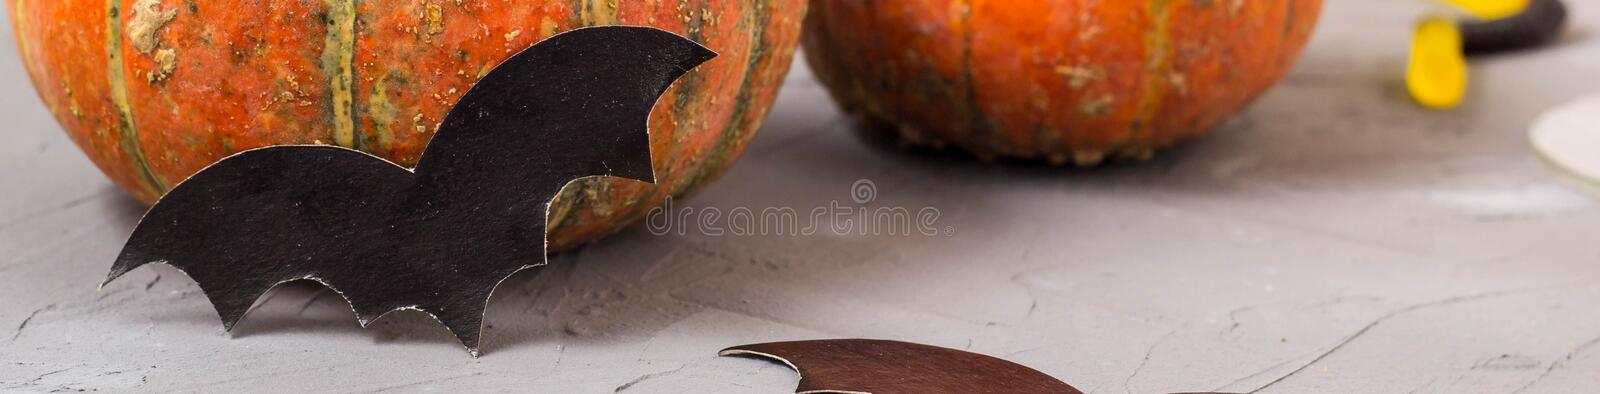 Banner of orange pumpkin and paper bats on white table, halloween concept stock images